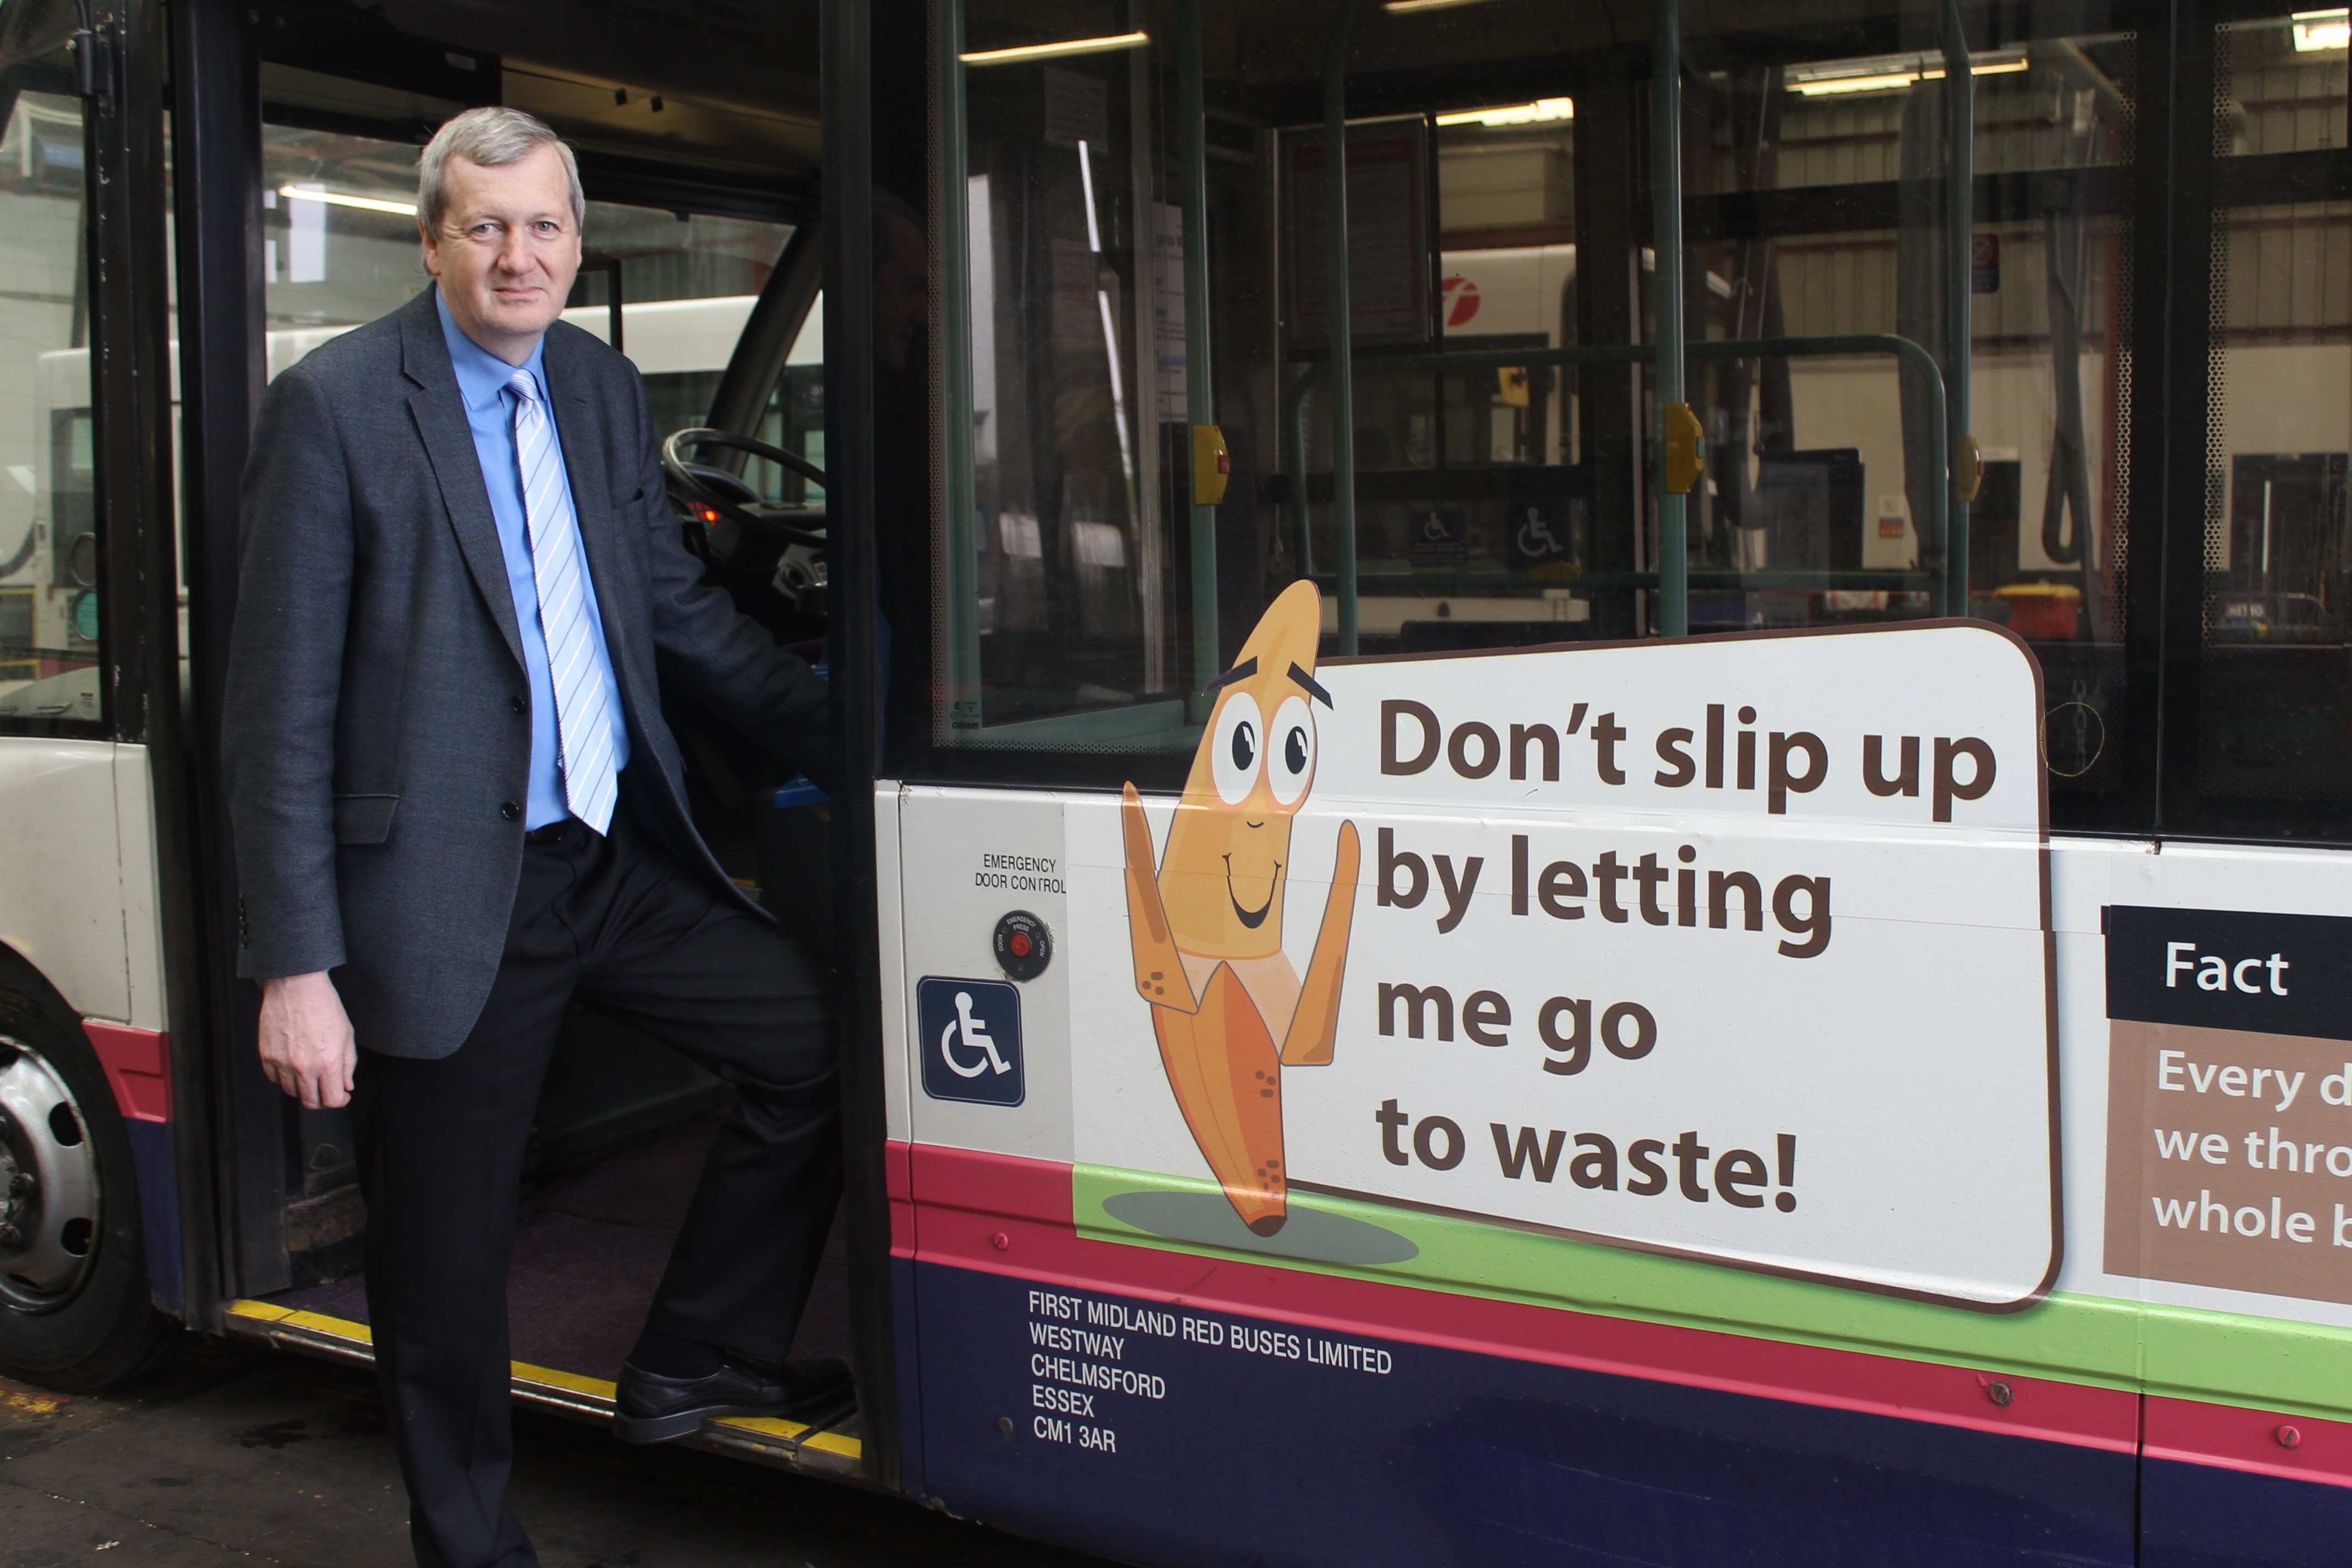 Cllr Anthony Blagg encouraging less food waste.